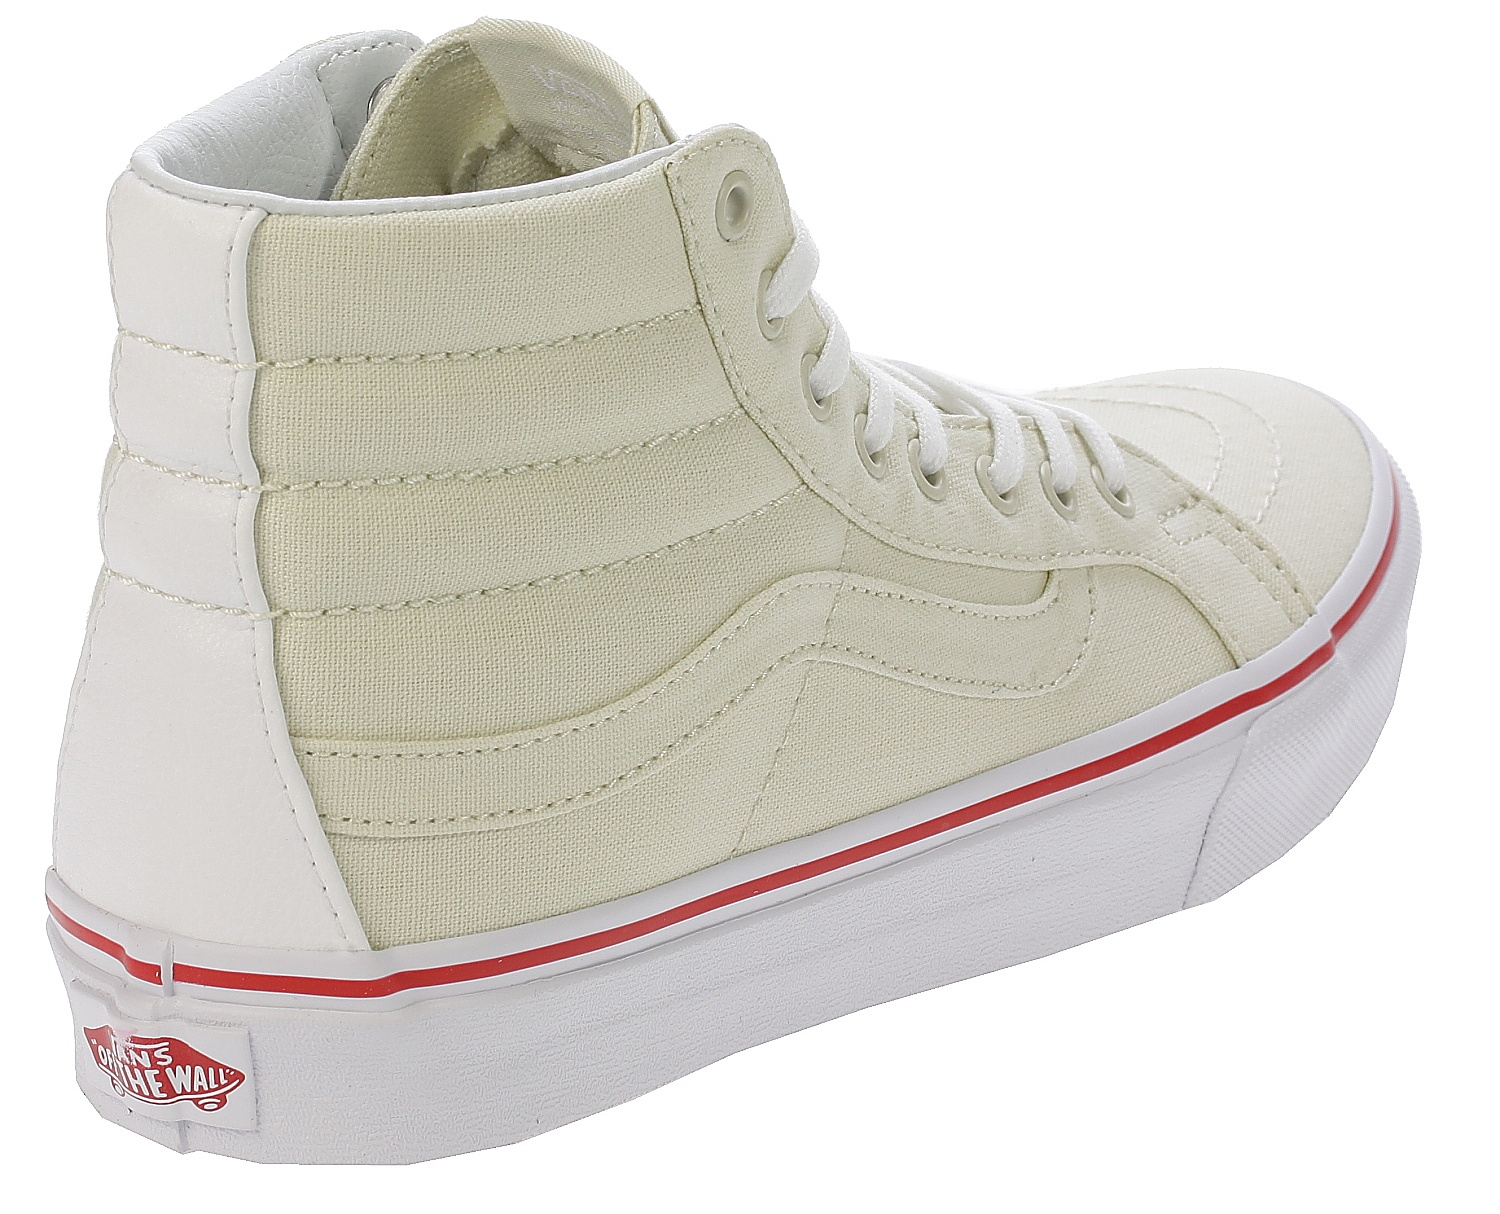 fbdb7fe7e7 shoes Vans Sk8-Hi Slim - Leather Canvas Bone True White - Snowboard ...